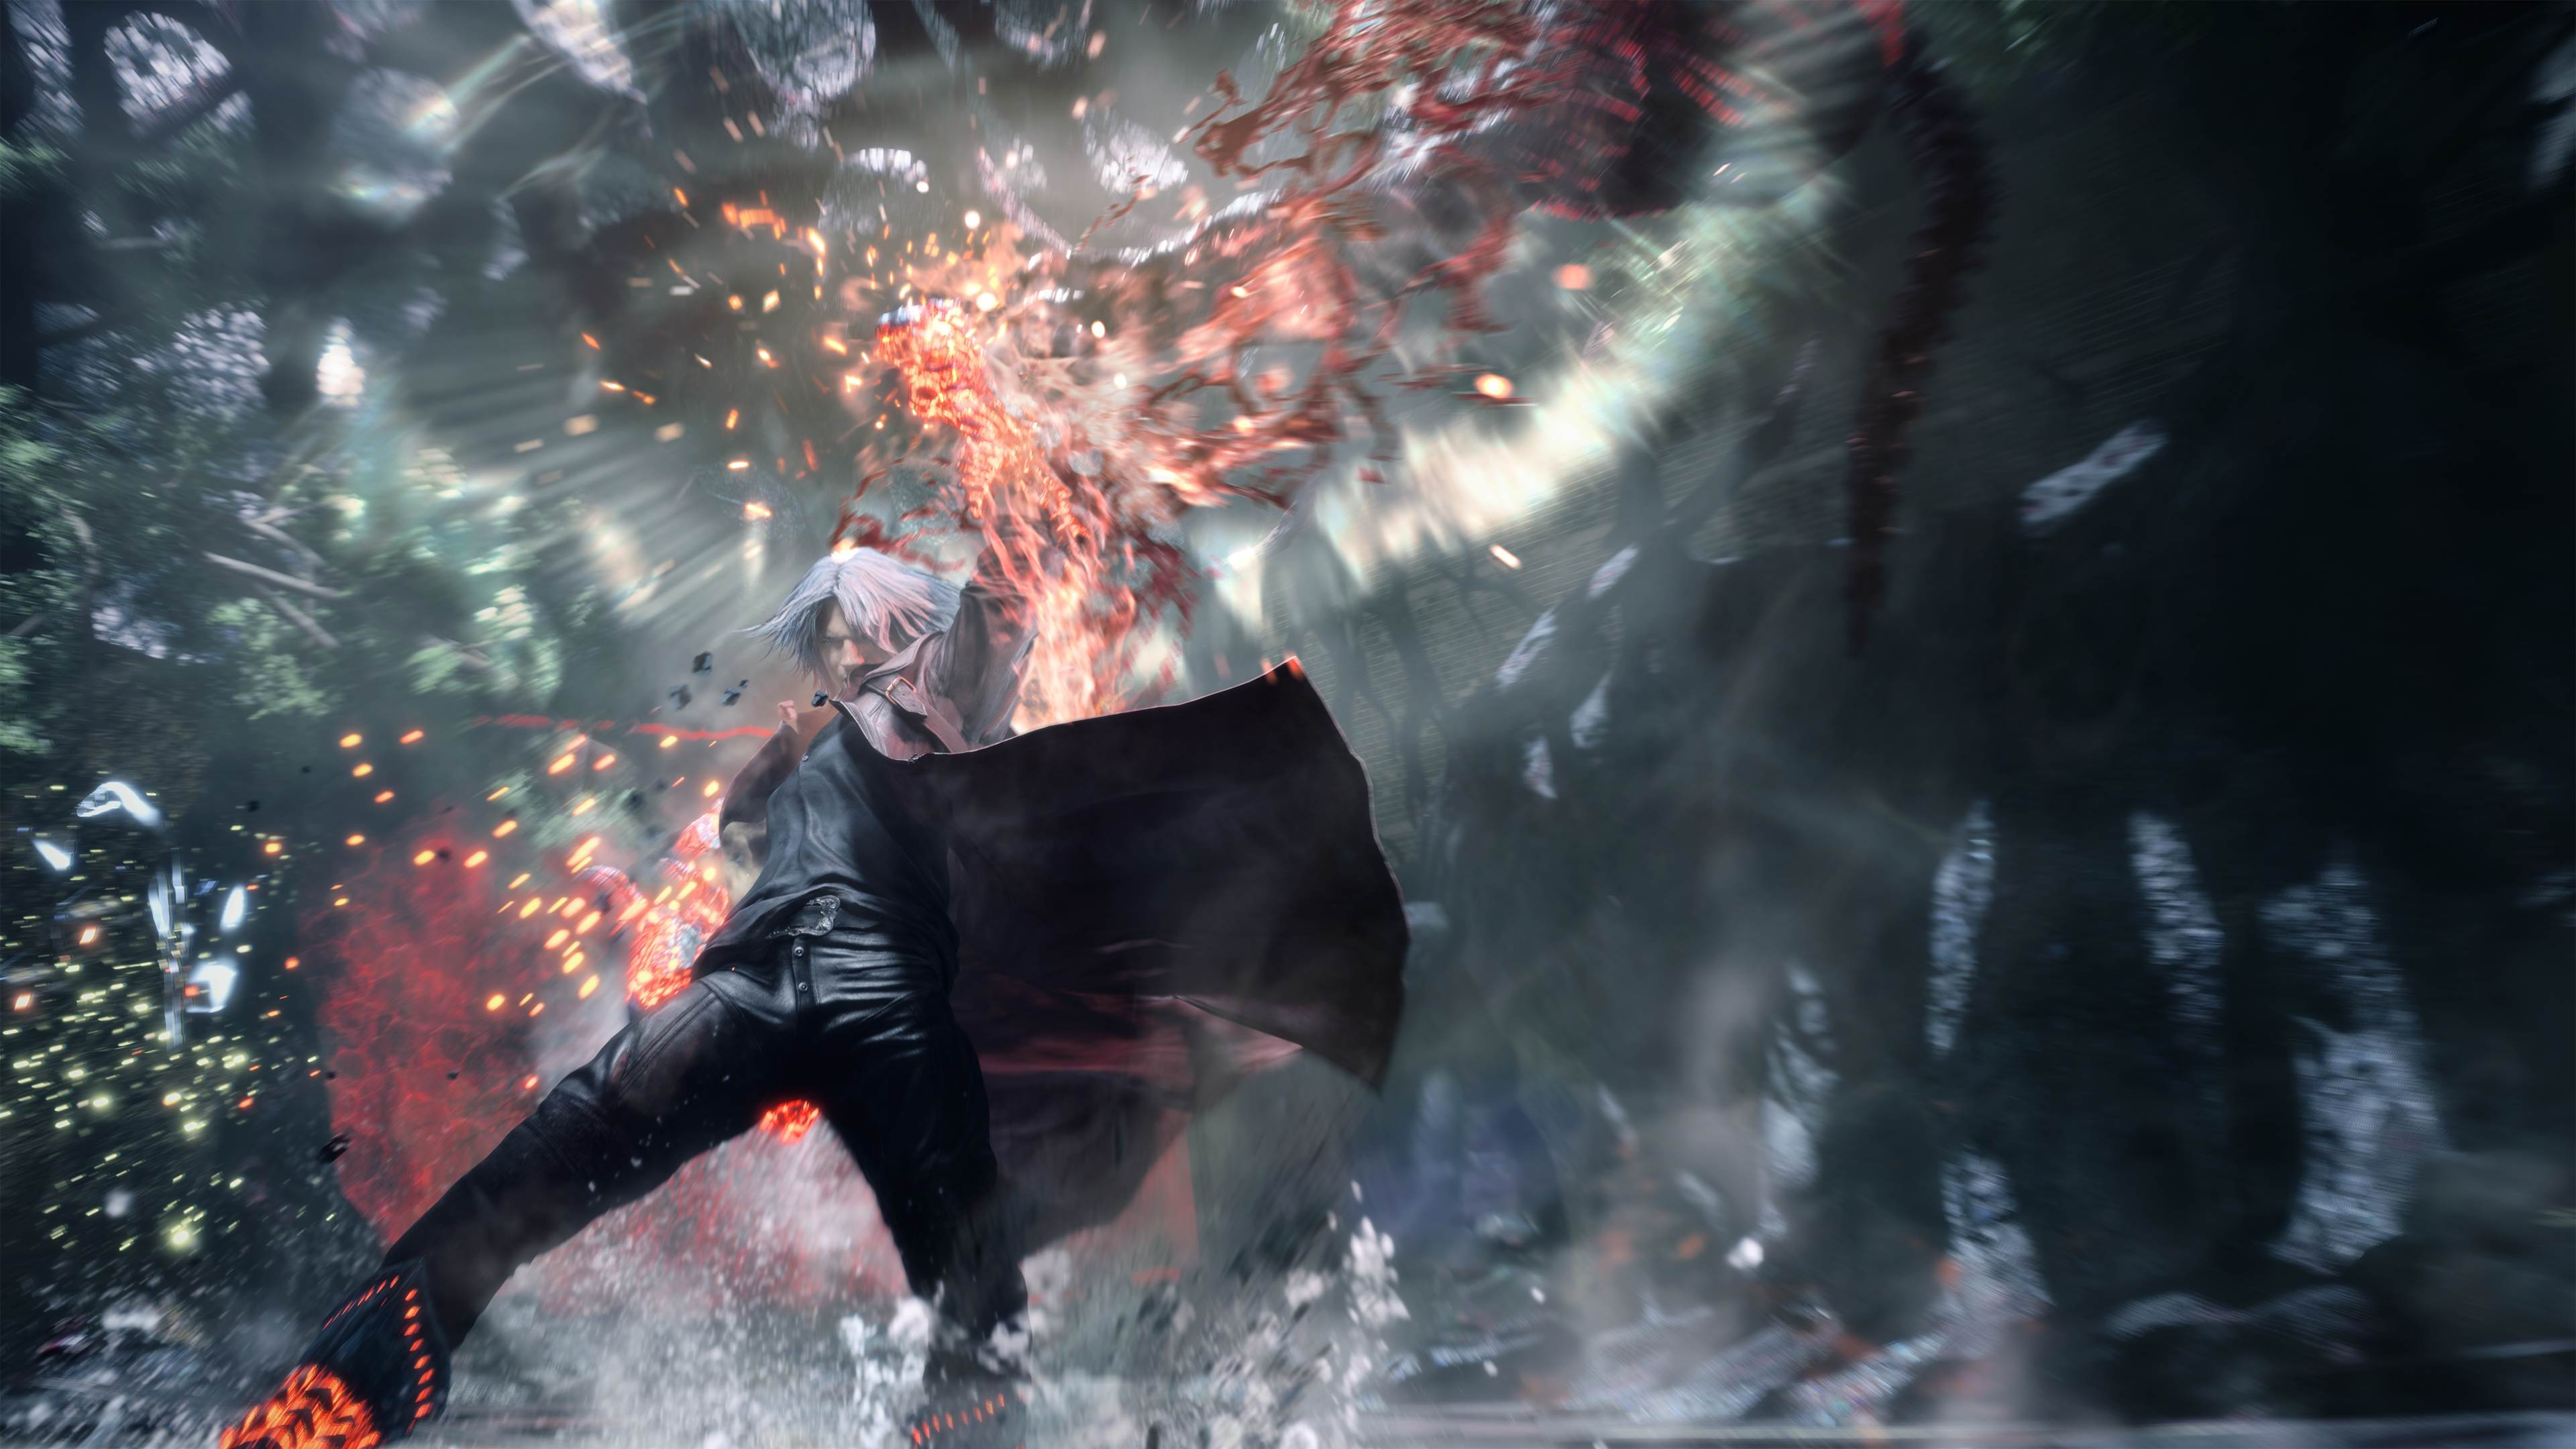 Devil may cry 5 4k 2019 game hd games 4k wallpapers images backgrounds photos and pictures - Devil may cry hd pics ...